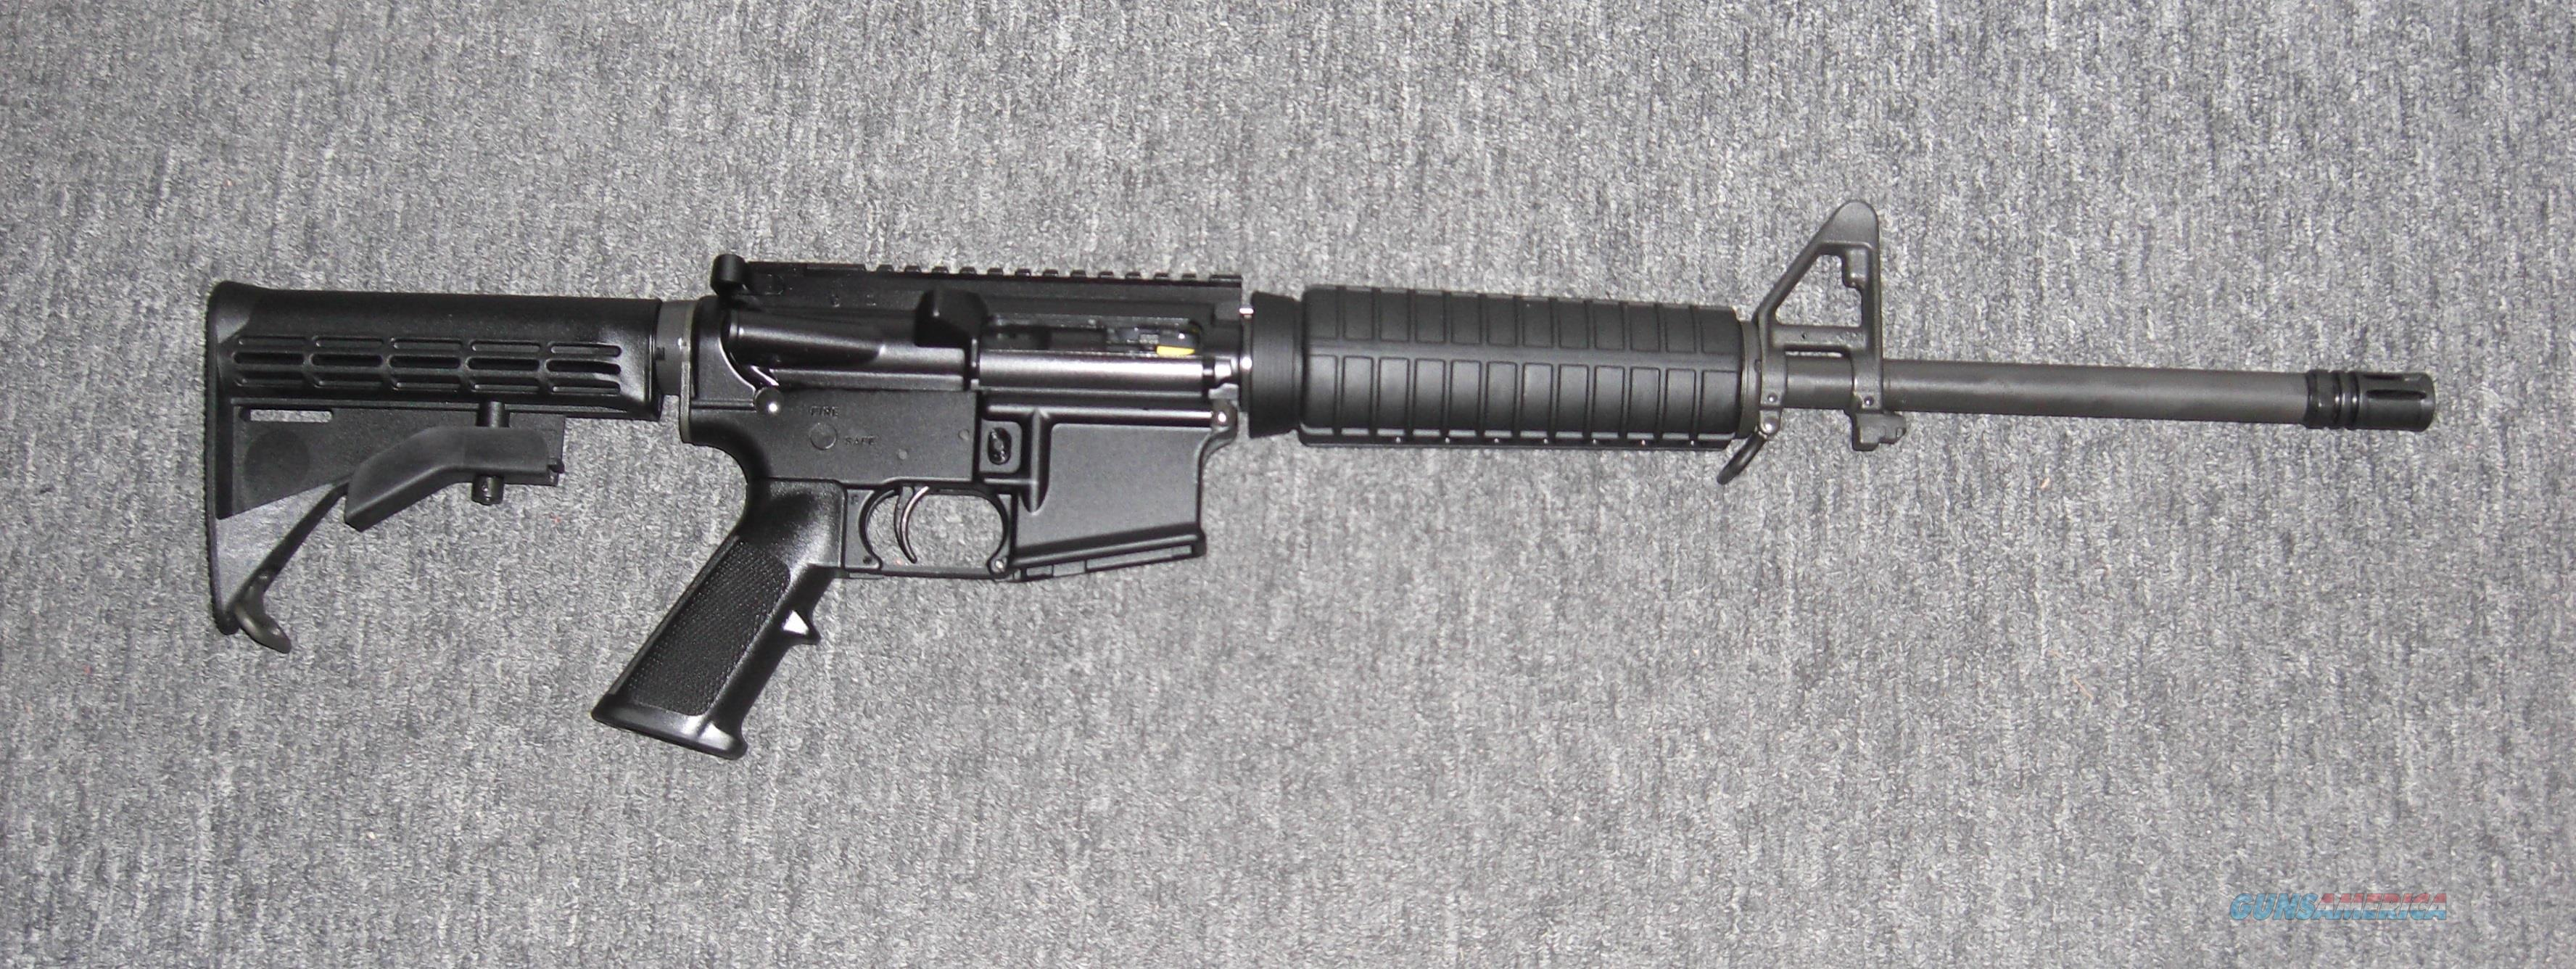 Colt Expanse M4  Guns > Rifles > Colt Military/Tactical Rifles